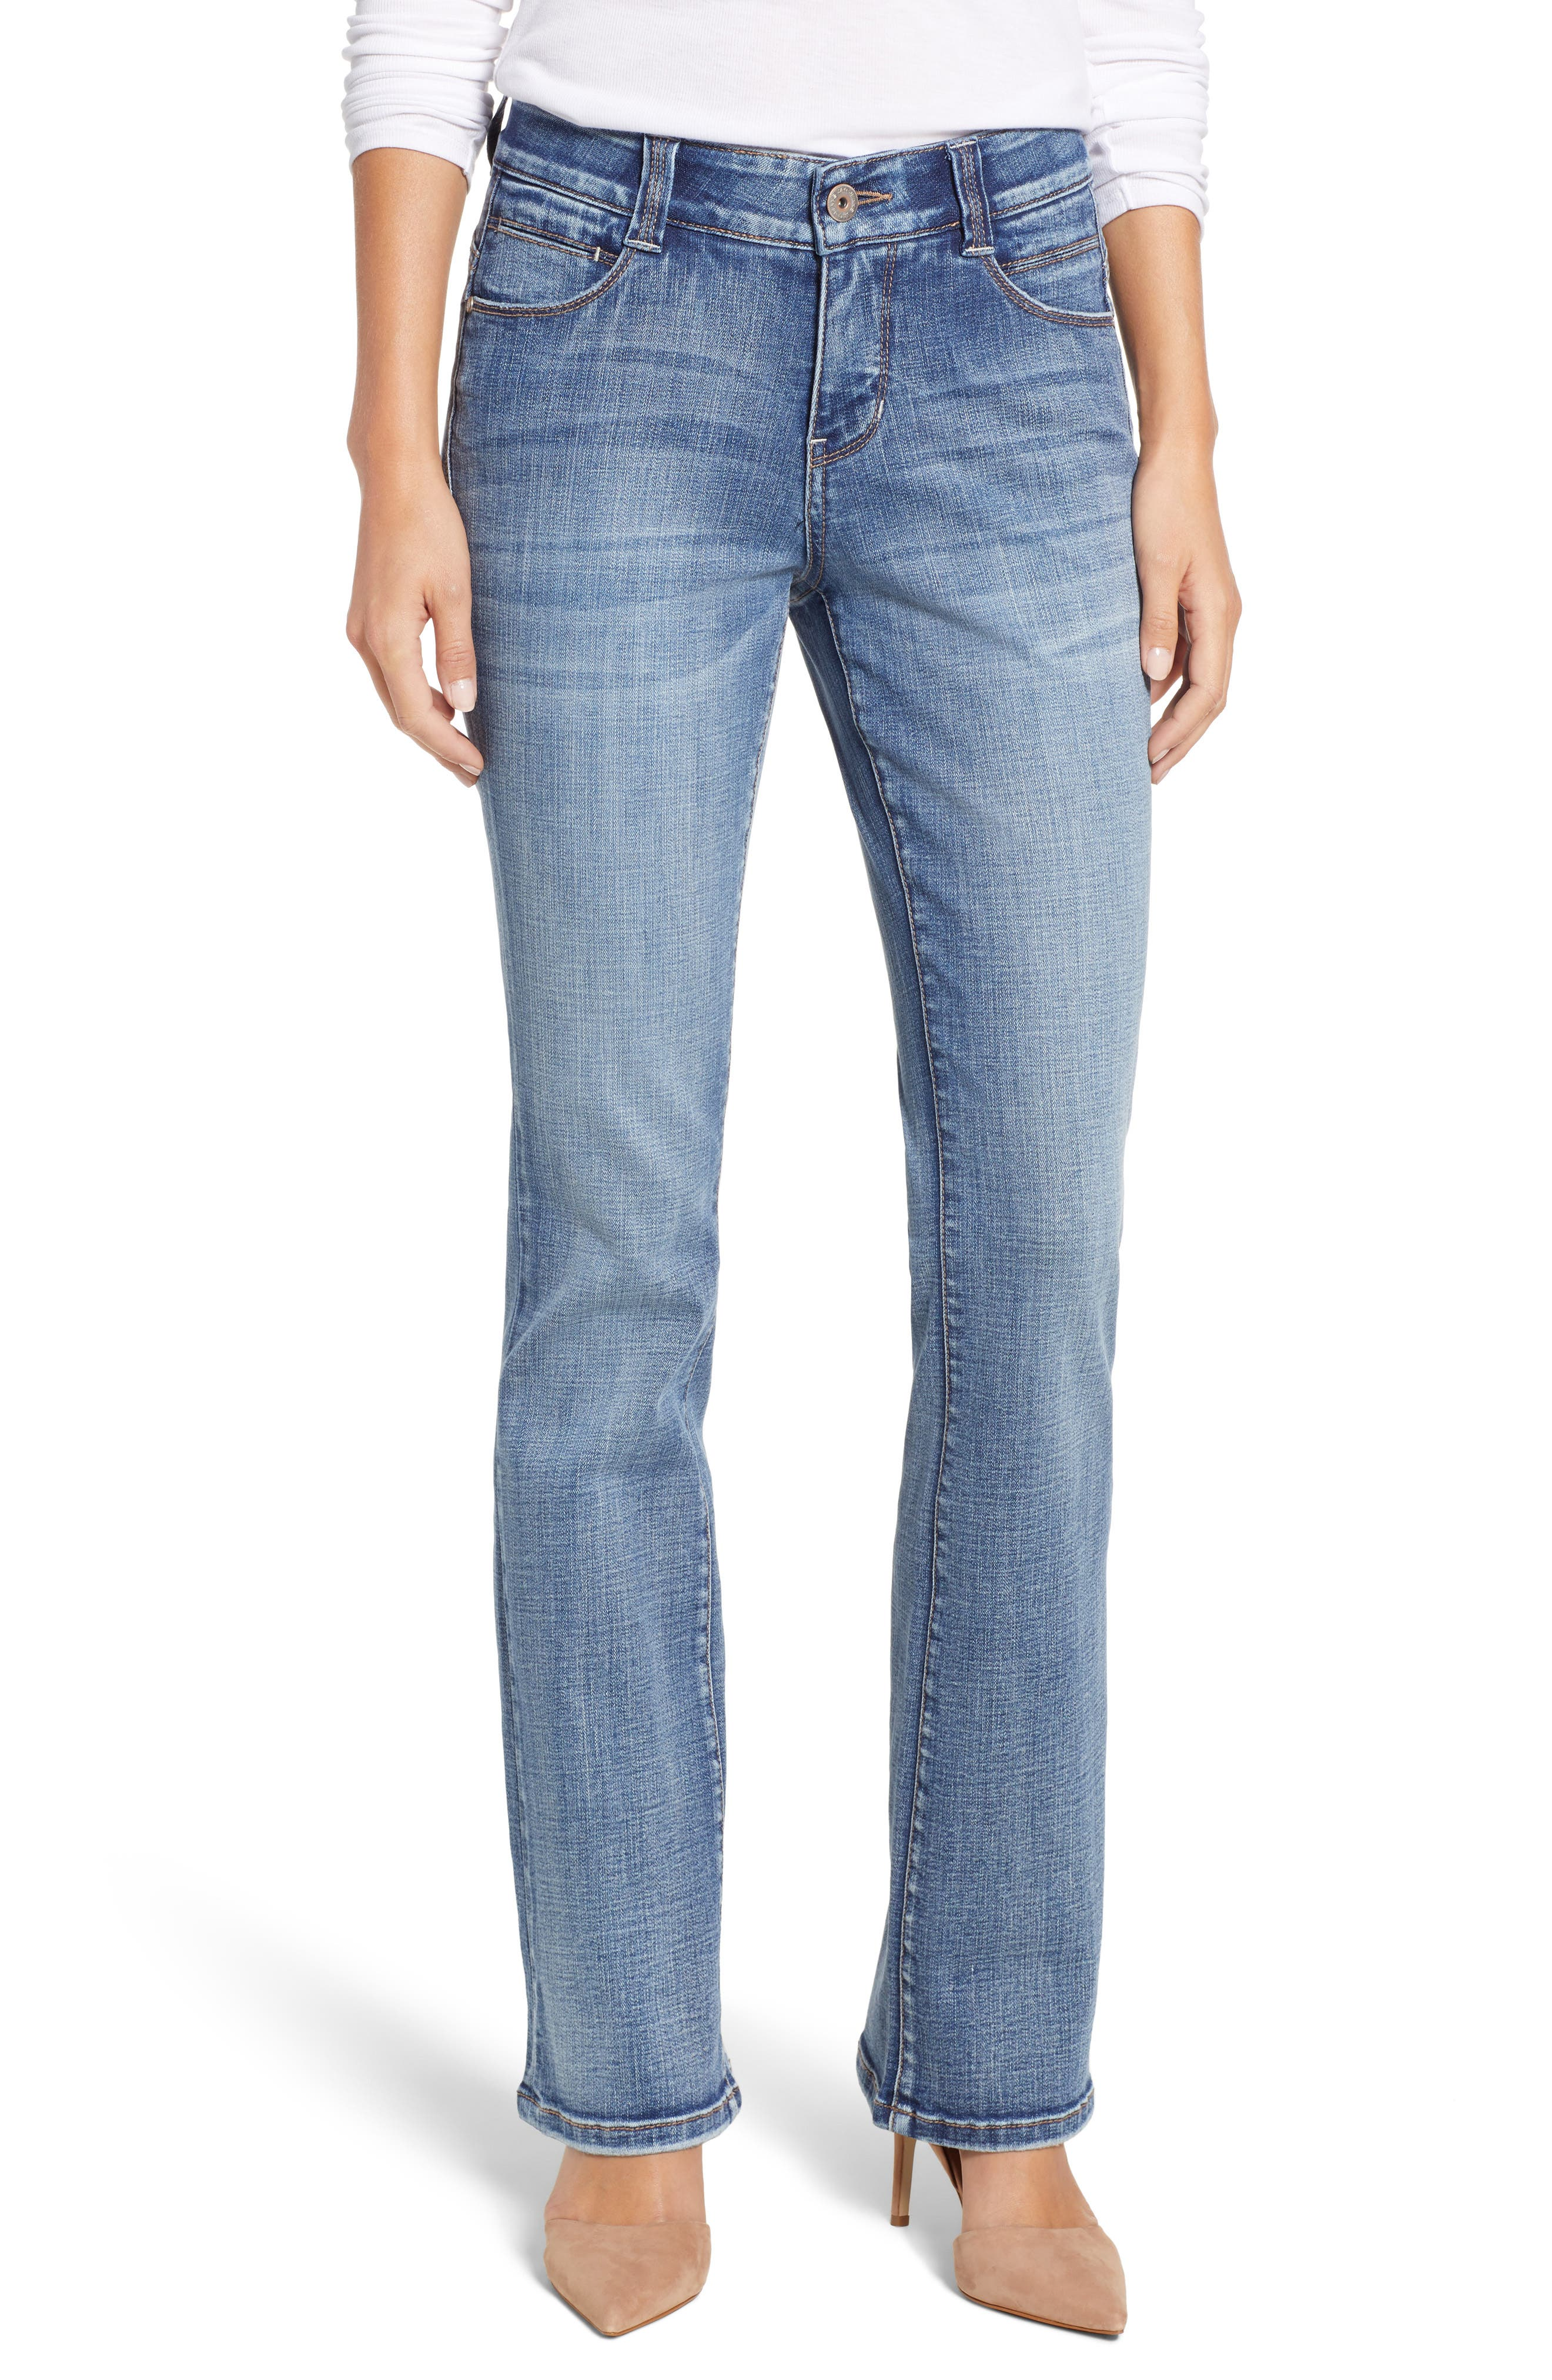 JAG JEANS Eloise Bootcut Jeans in Med Indigo